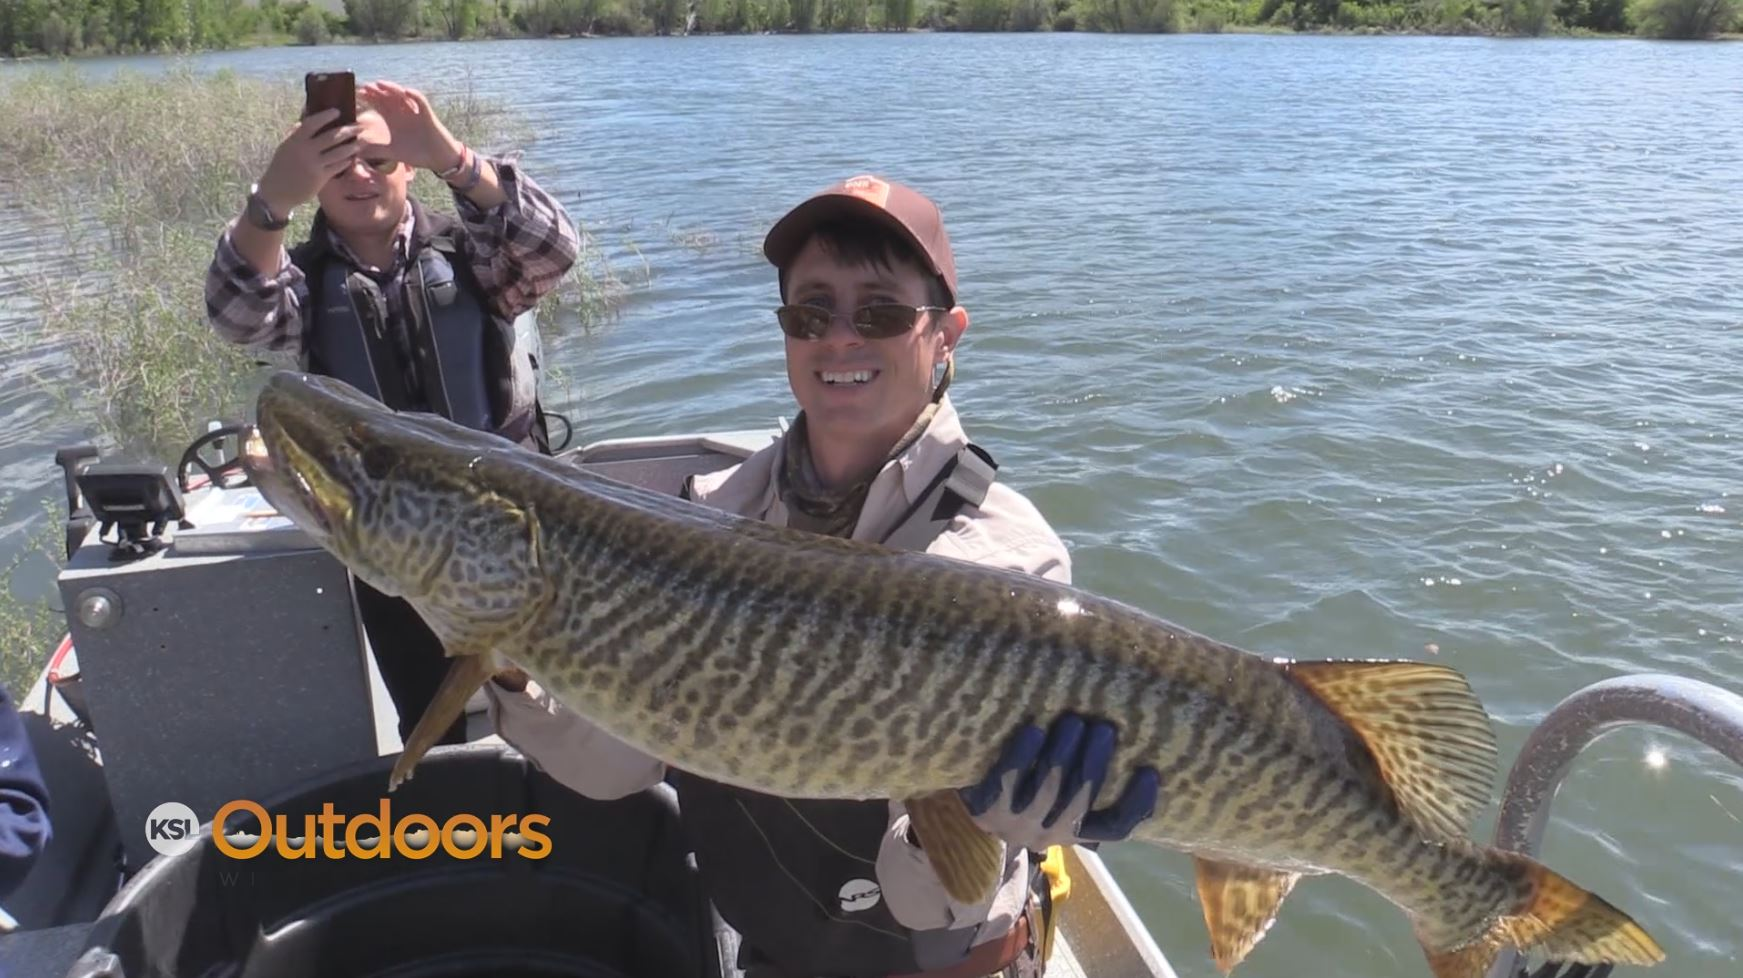 Ksl outdoors fishing for tiger muskie at pineview reservoir for Tiger muskie fishing